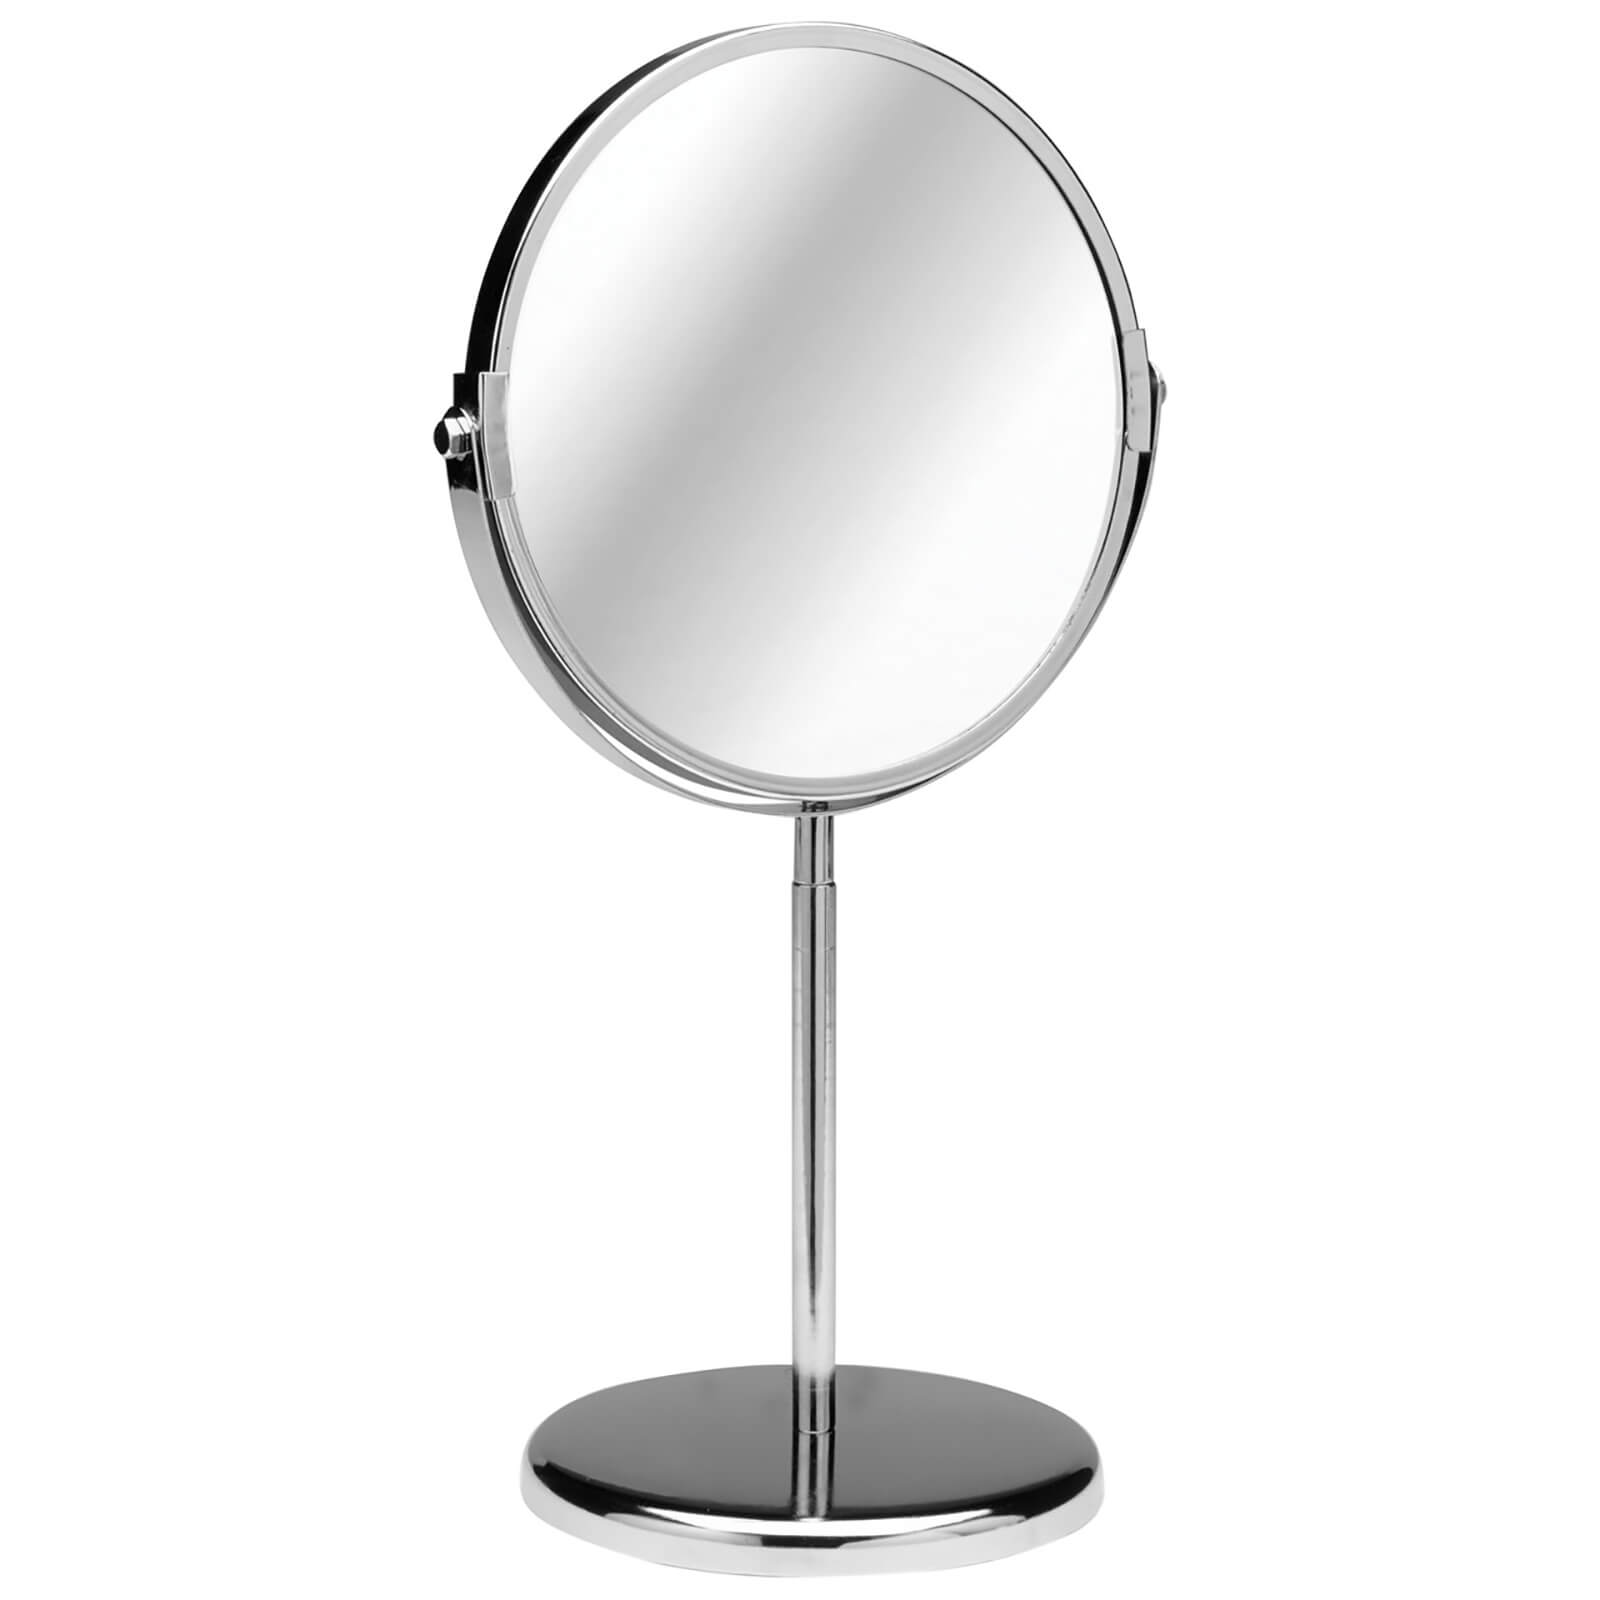 Premier Housewares Shaving Mirror - Chrome